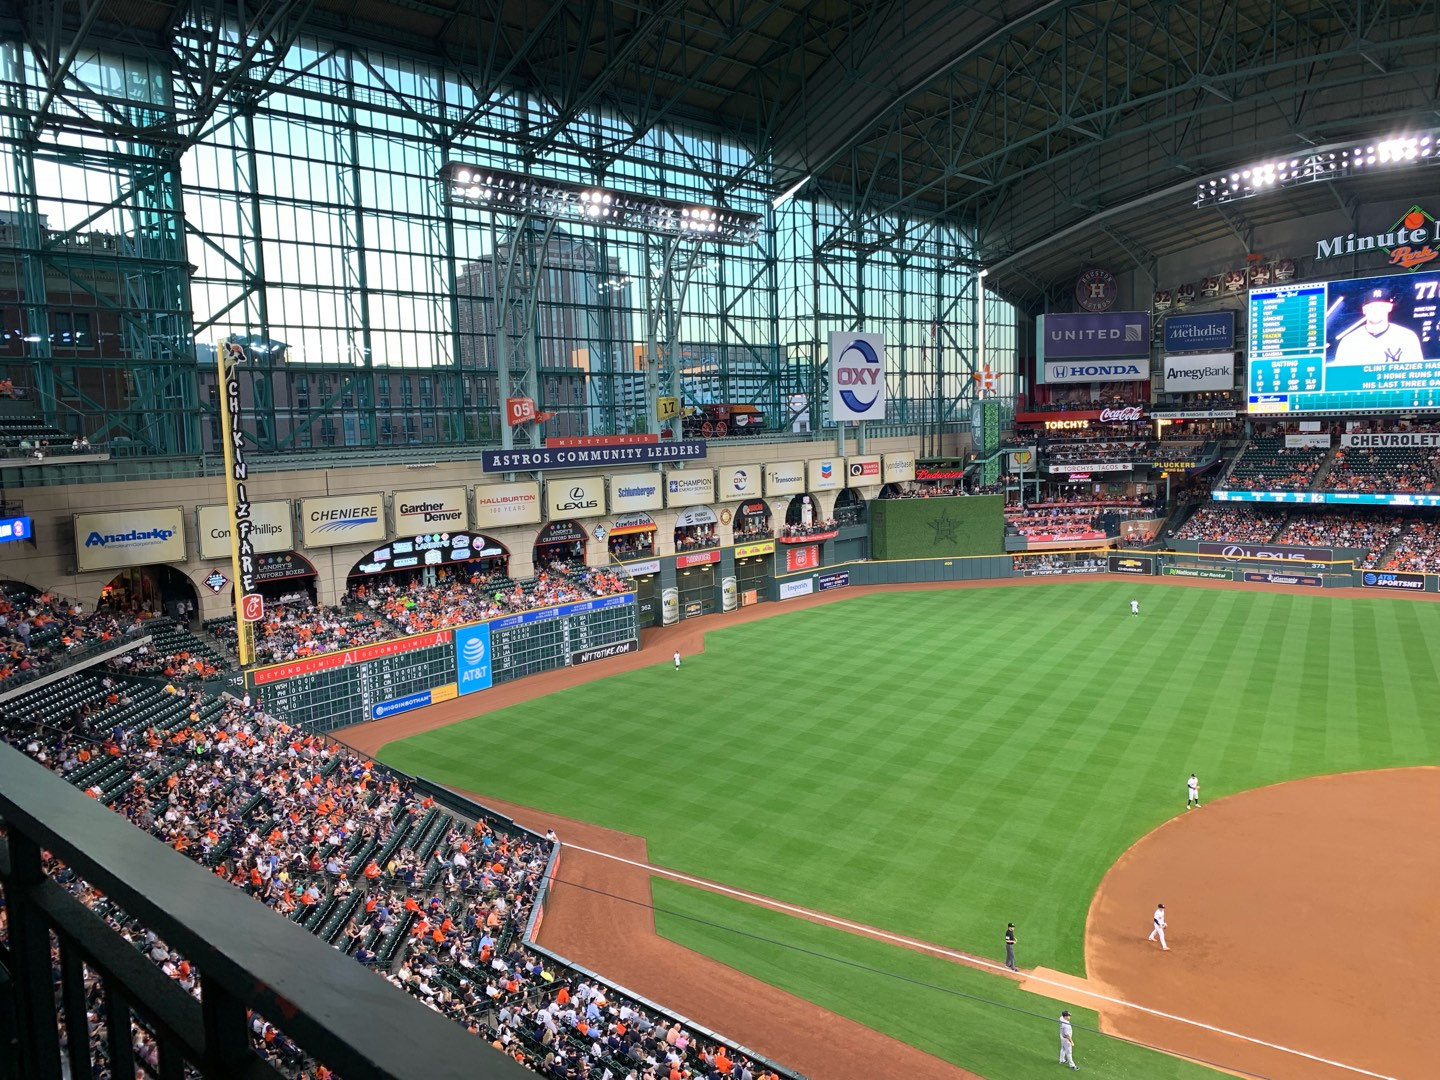 Minute Maid Park Section 313 Row 1 Seat 11